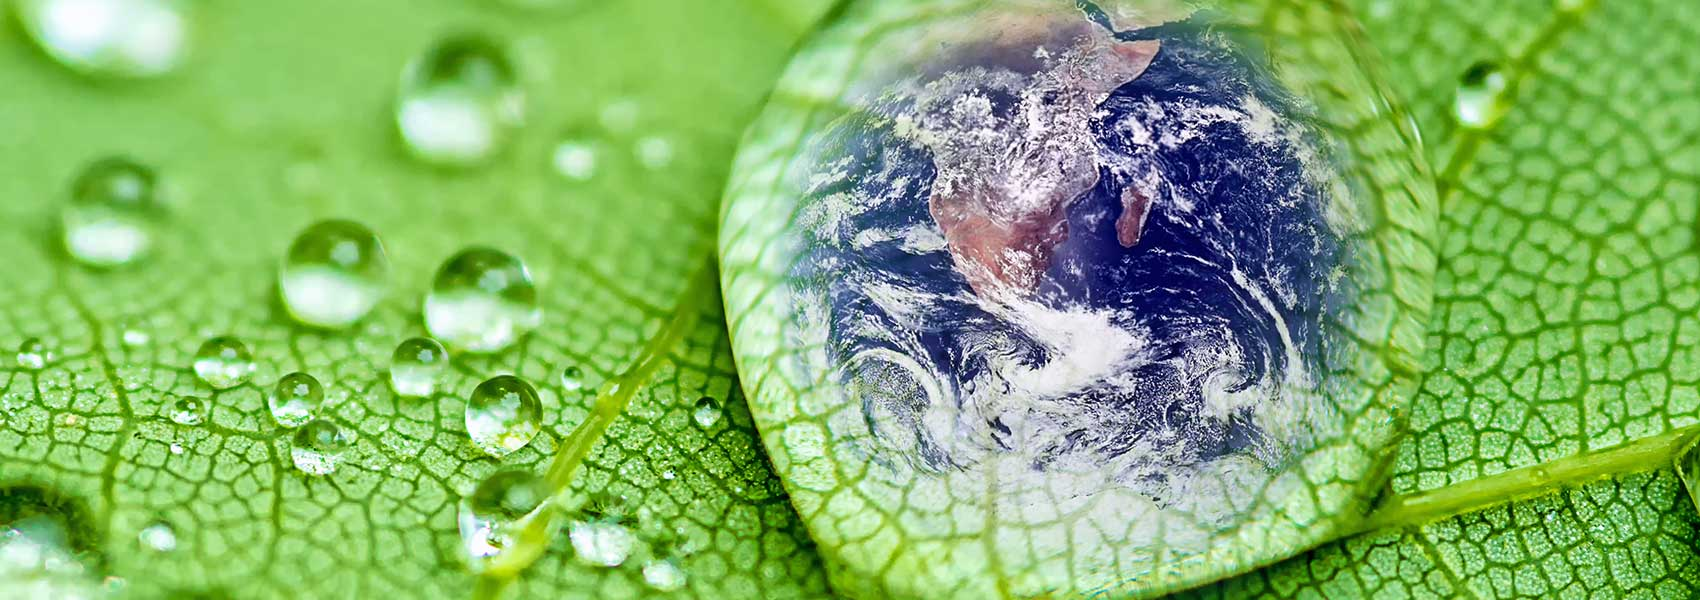 US EPA Completed Pilot Assessment of Ecolabels and Standards